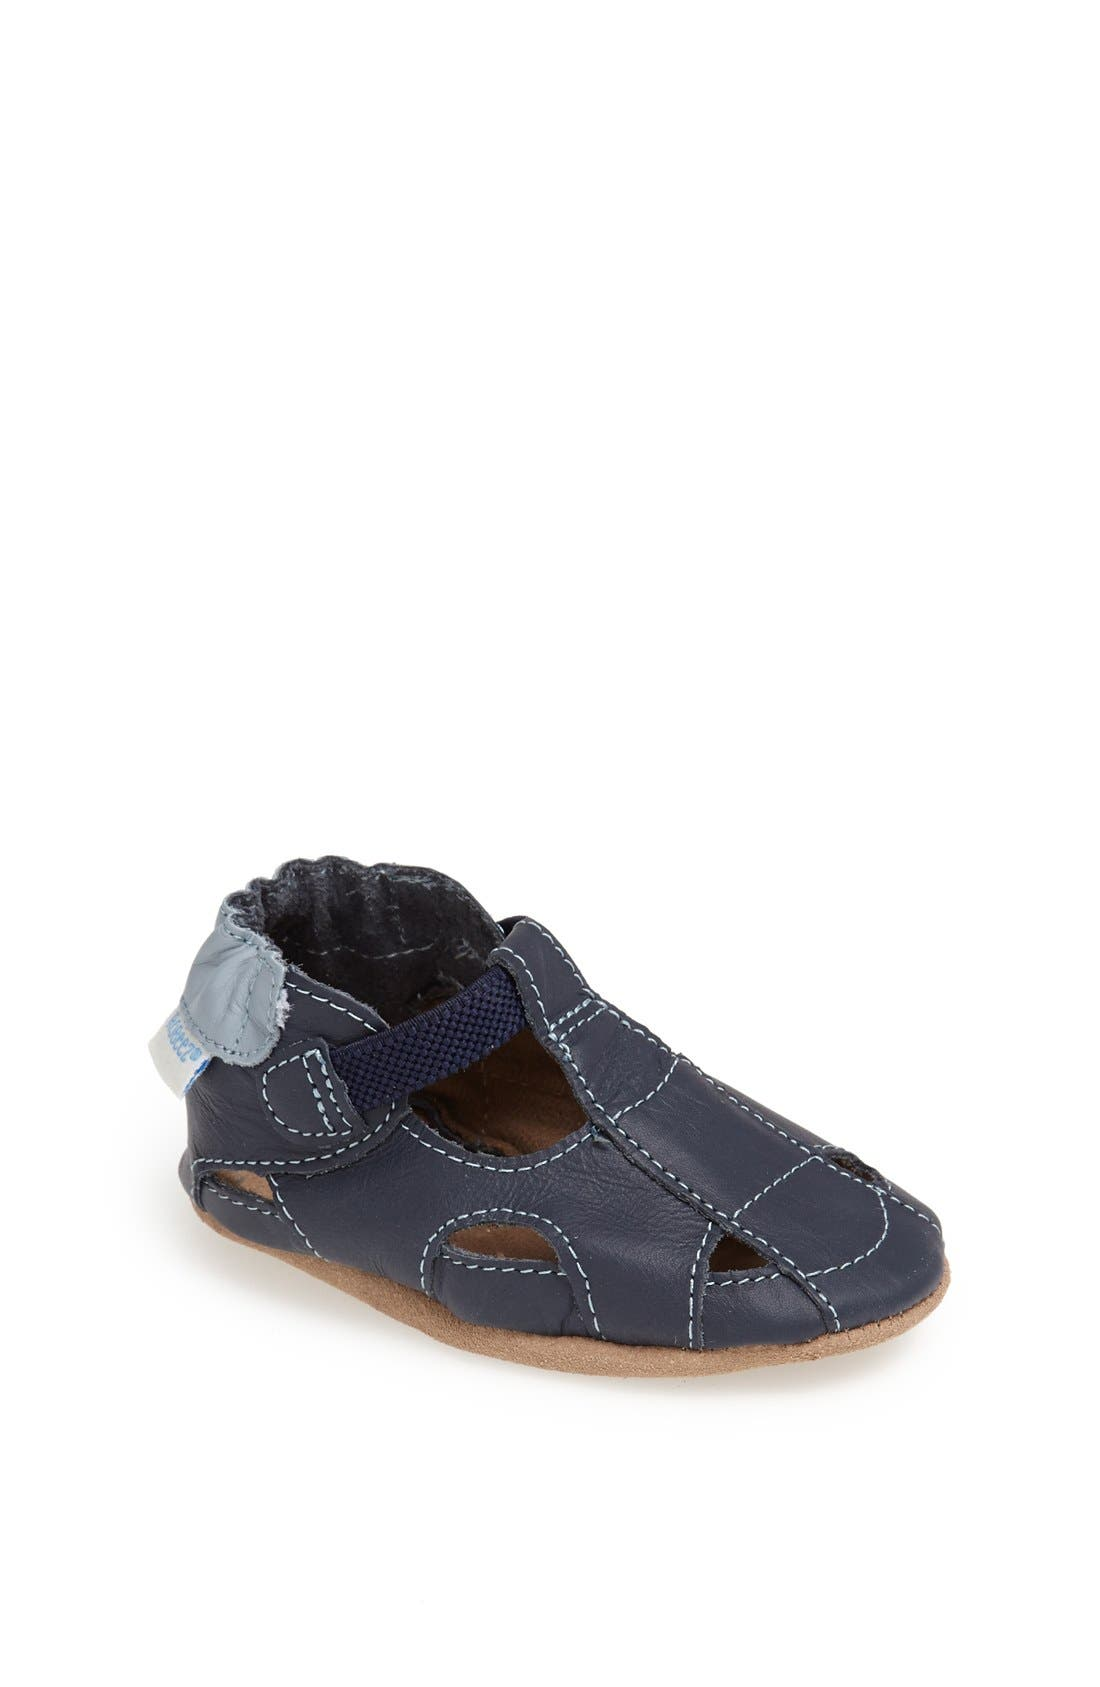 ROBEEZ<SUP>®</SUP> Fisherman Sandal, Main, color, NAVY